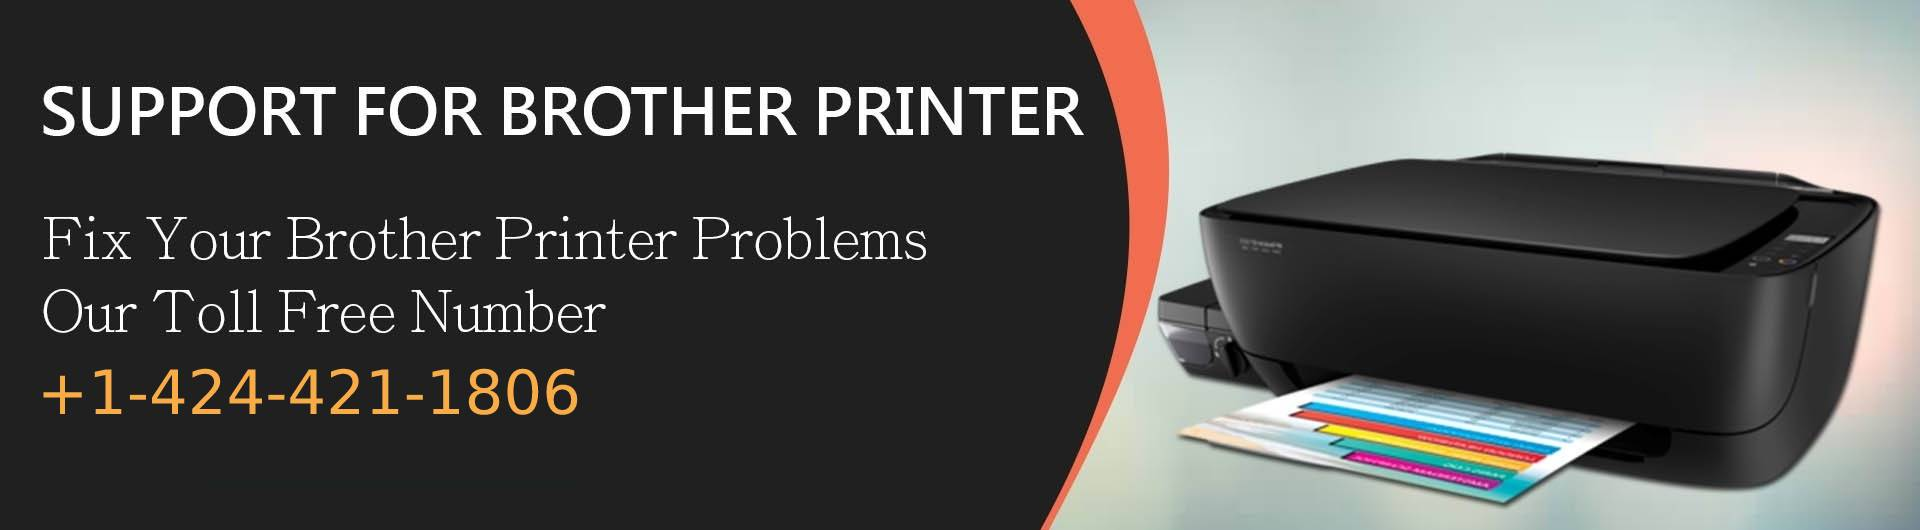 Brother Printer customer service phone number USA